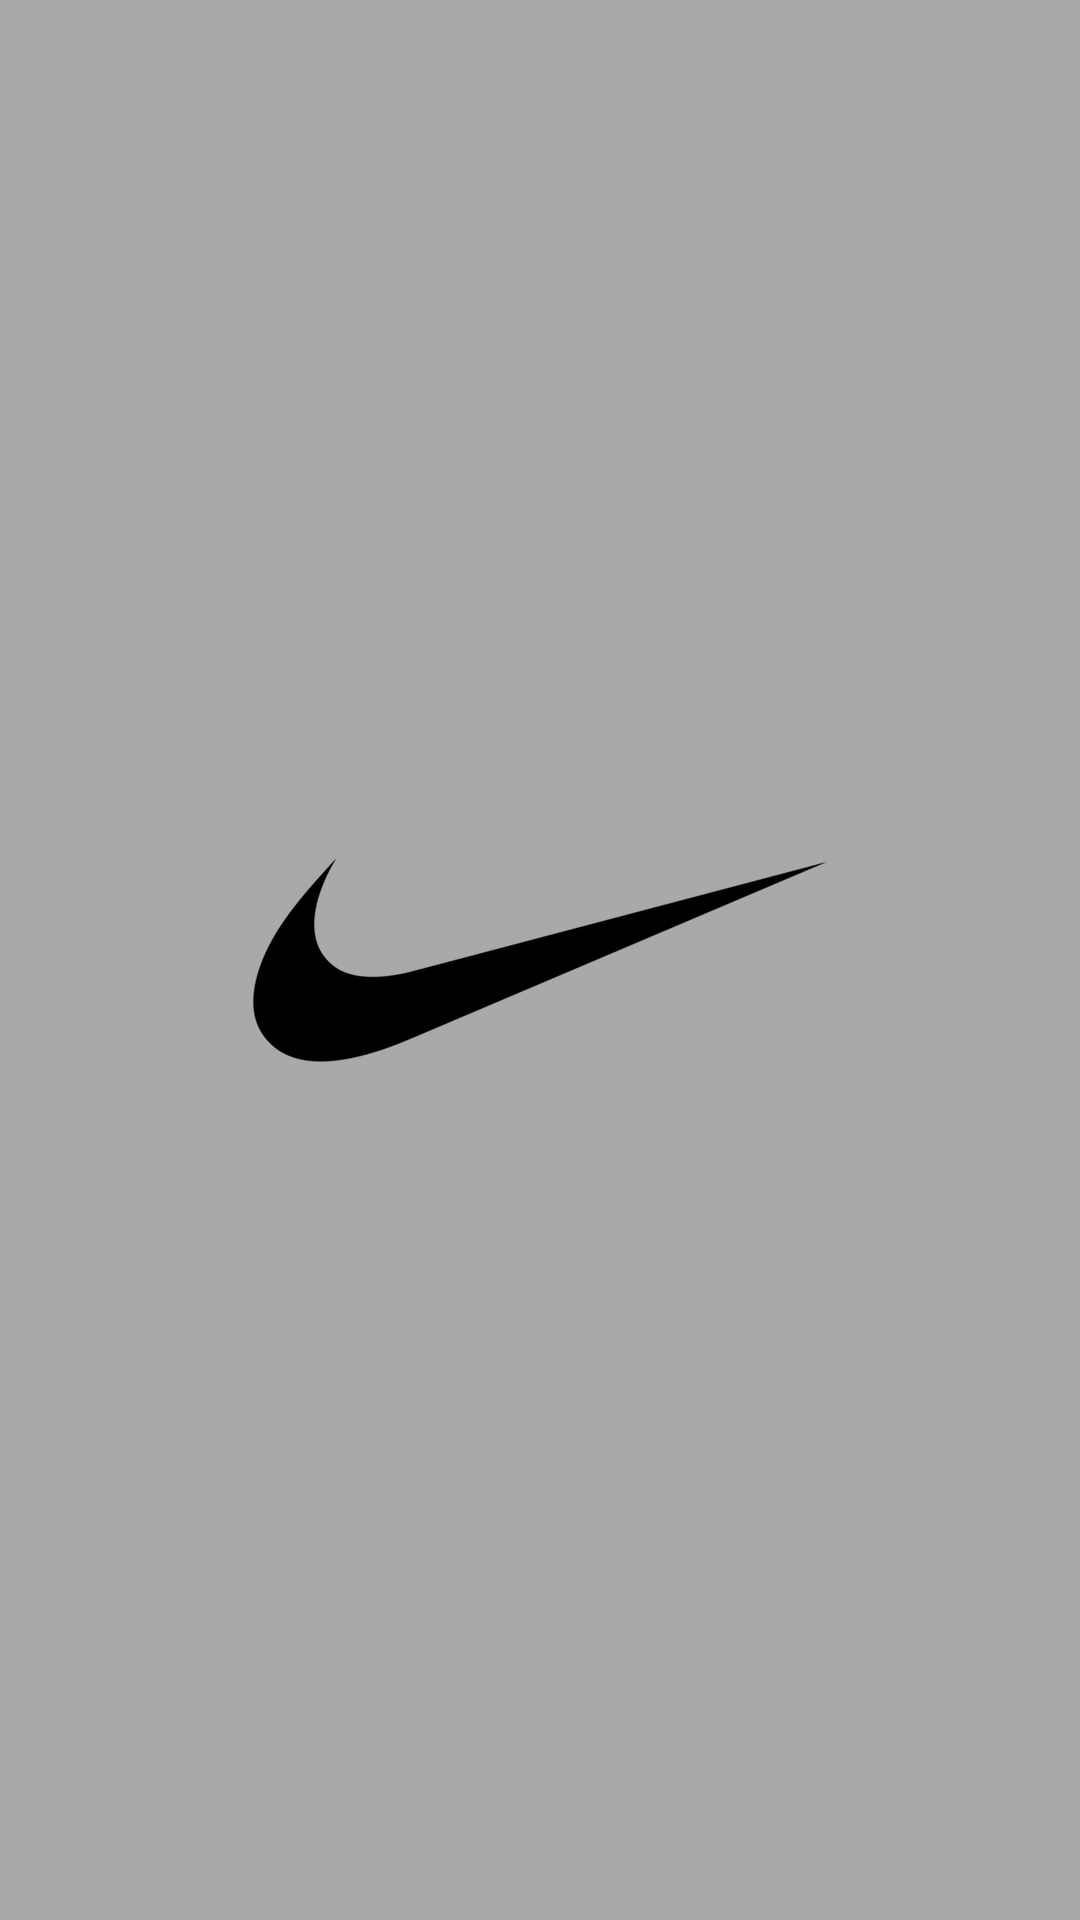 Logo Nike Wallpapers 68 Background Pictures